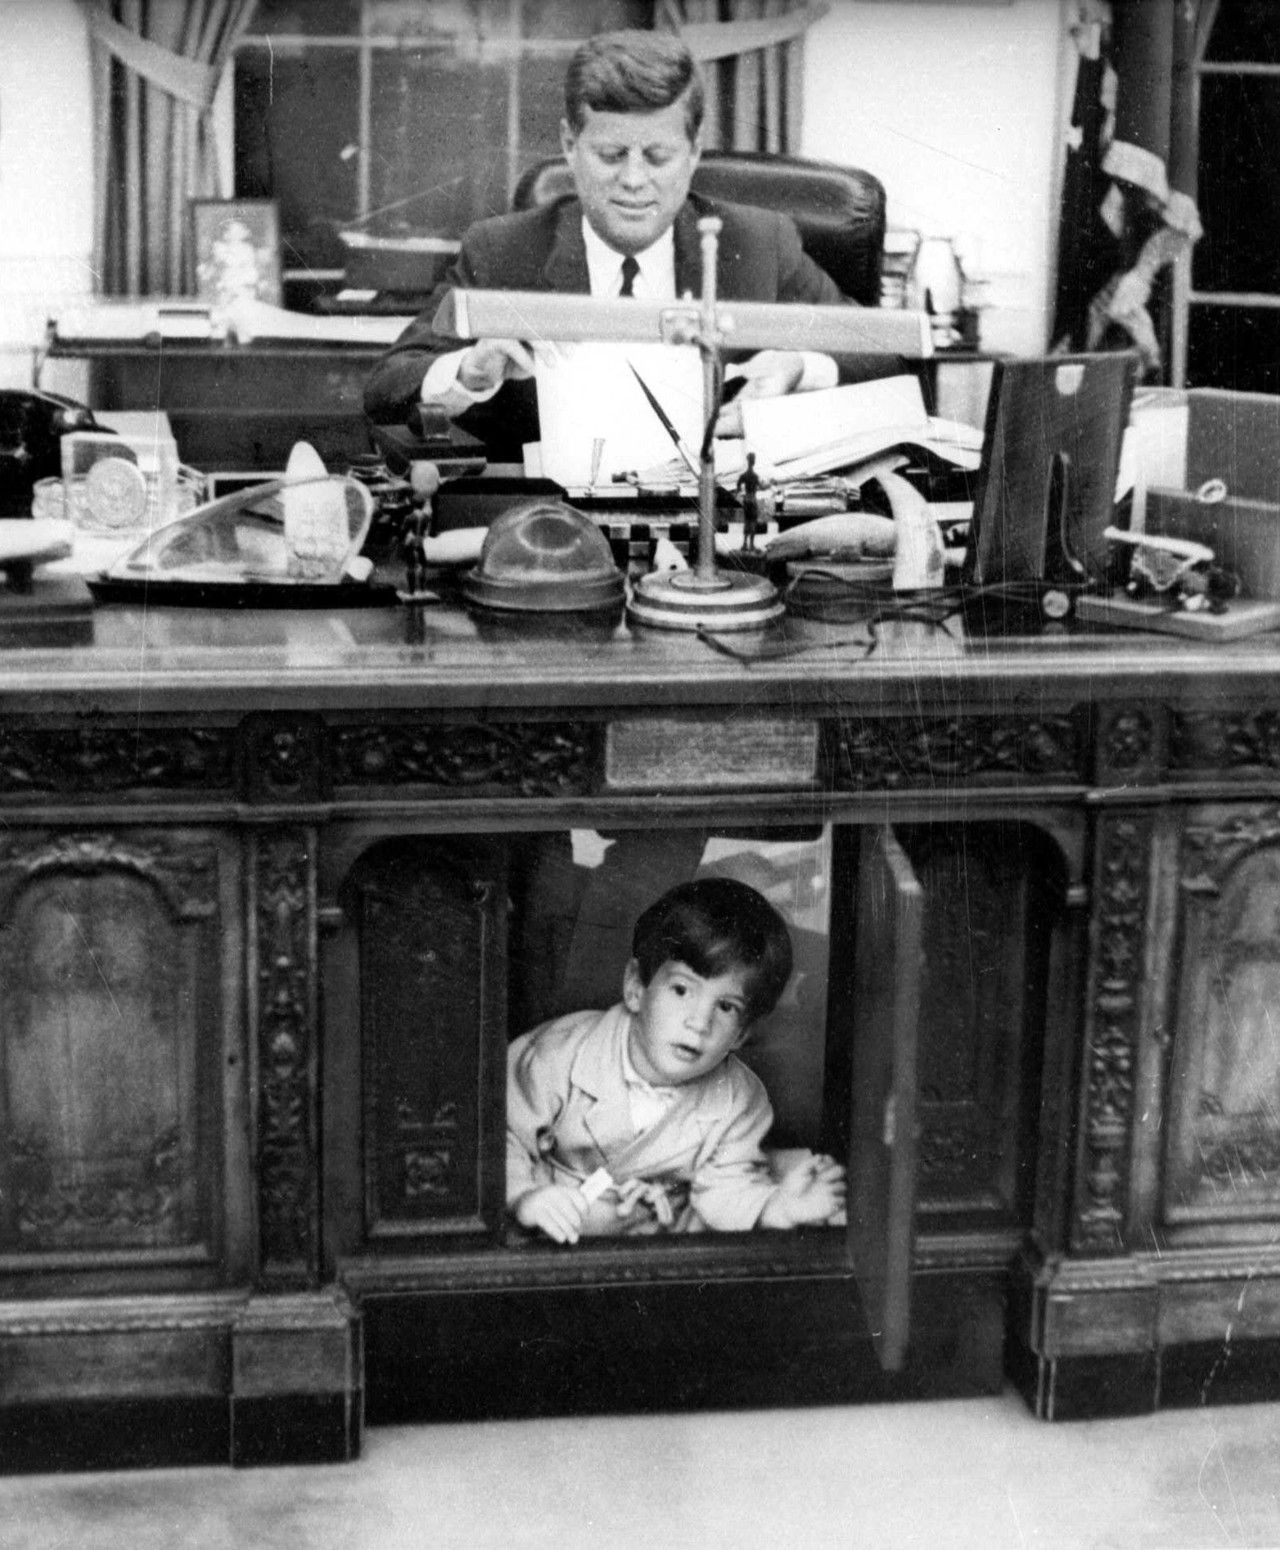 white house oval office desk. John F. Kennedy And Son, Jr. / In The Oval Office At White House, Most Famous Pictures Of This Very Historical Desk House